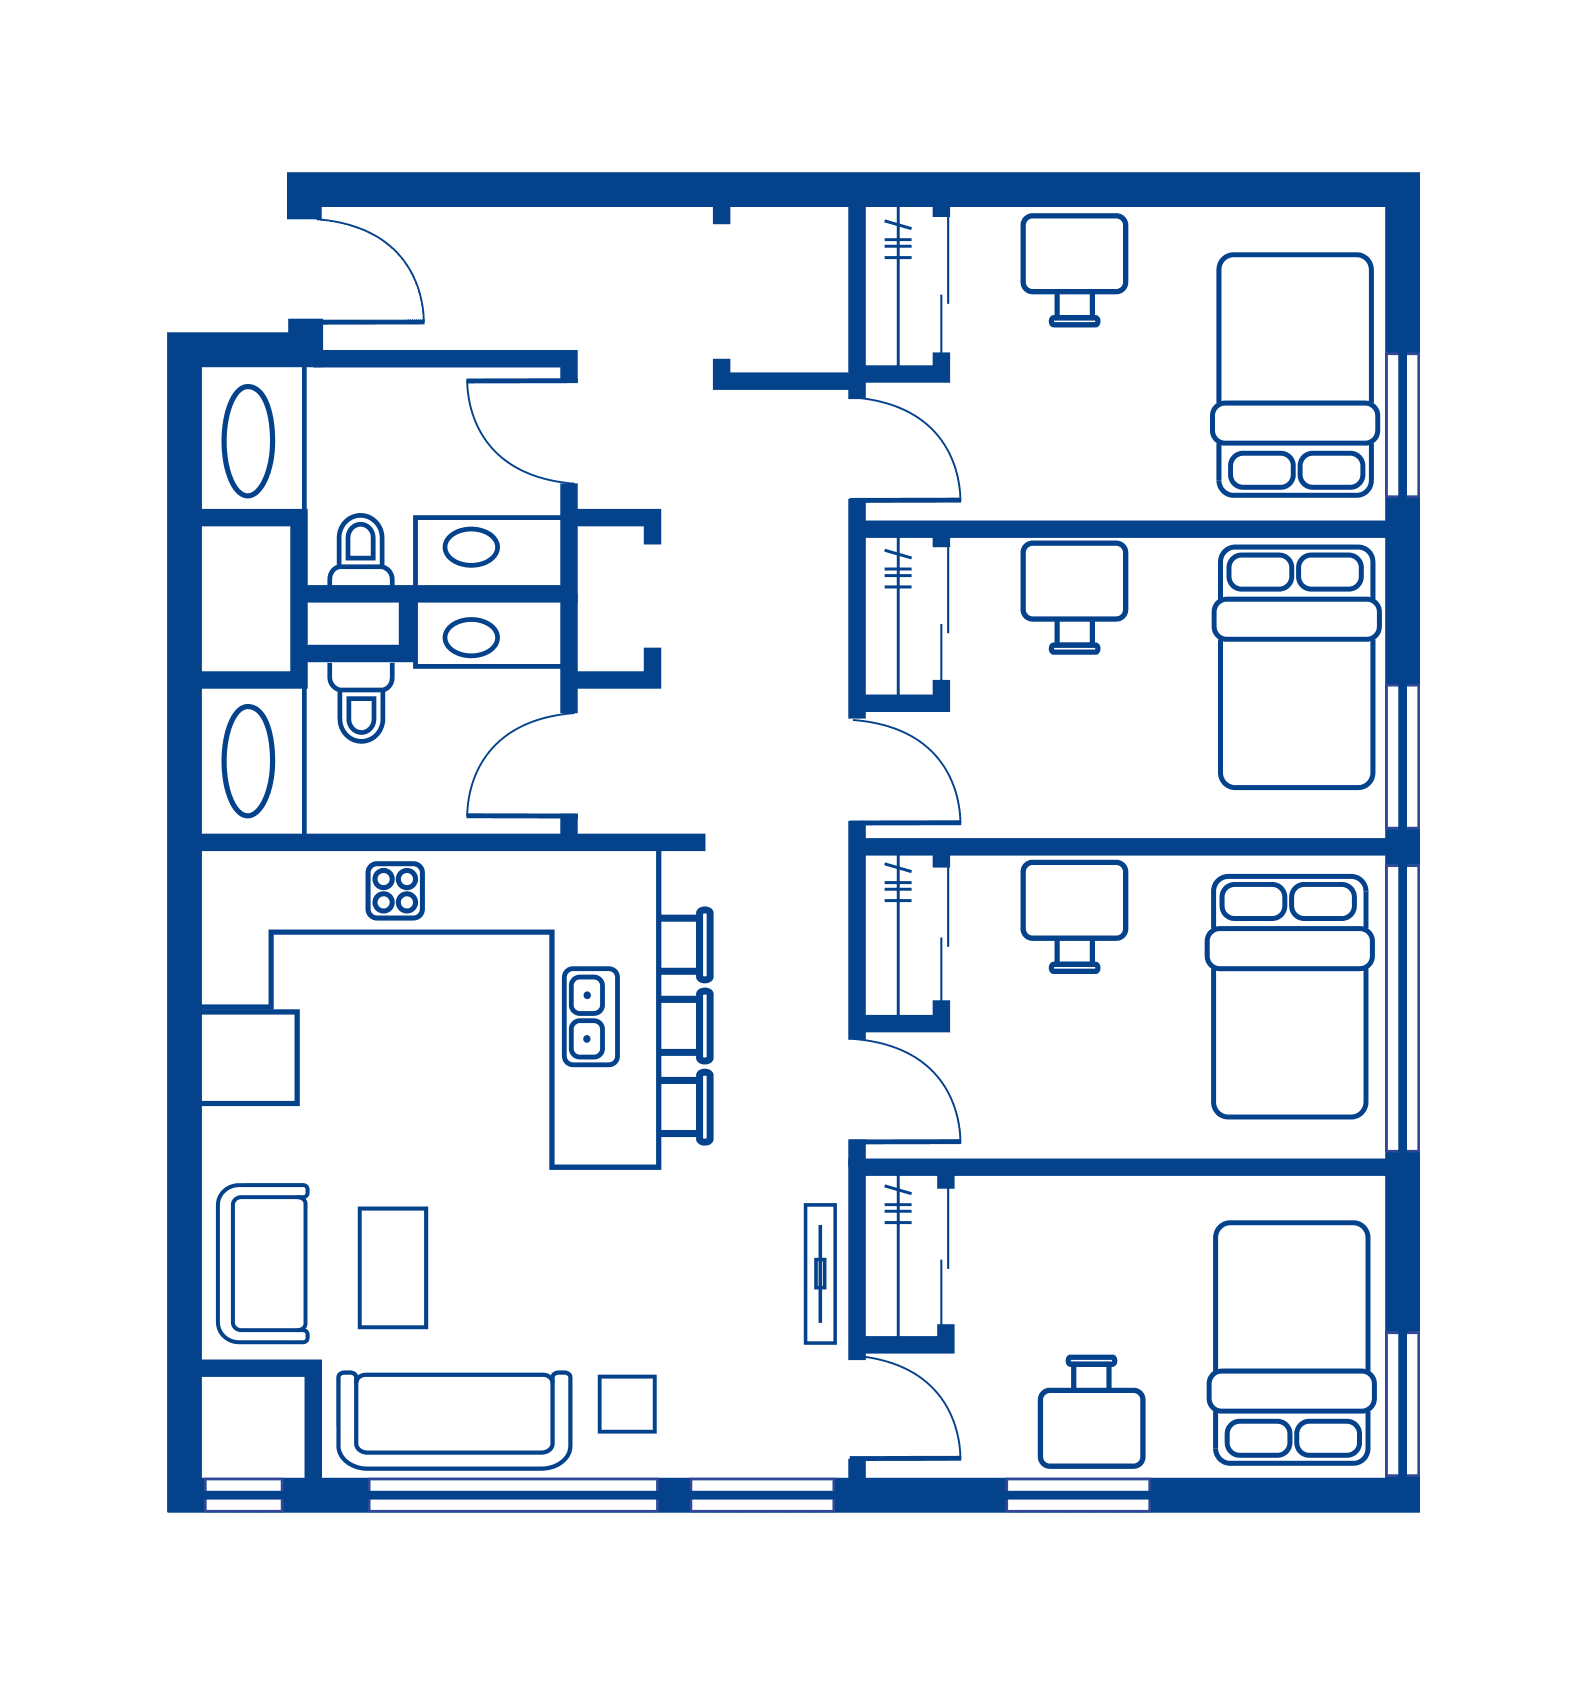 4 Bedroom Floorplan 1